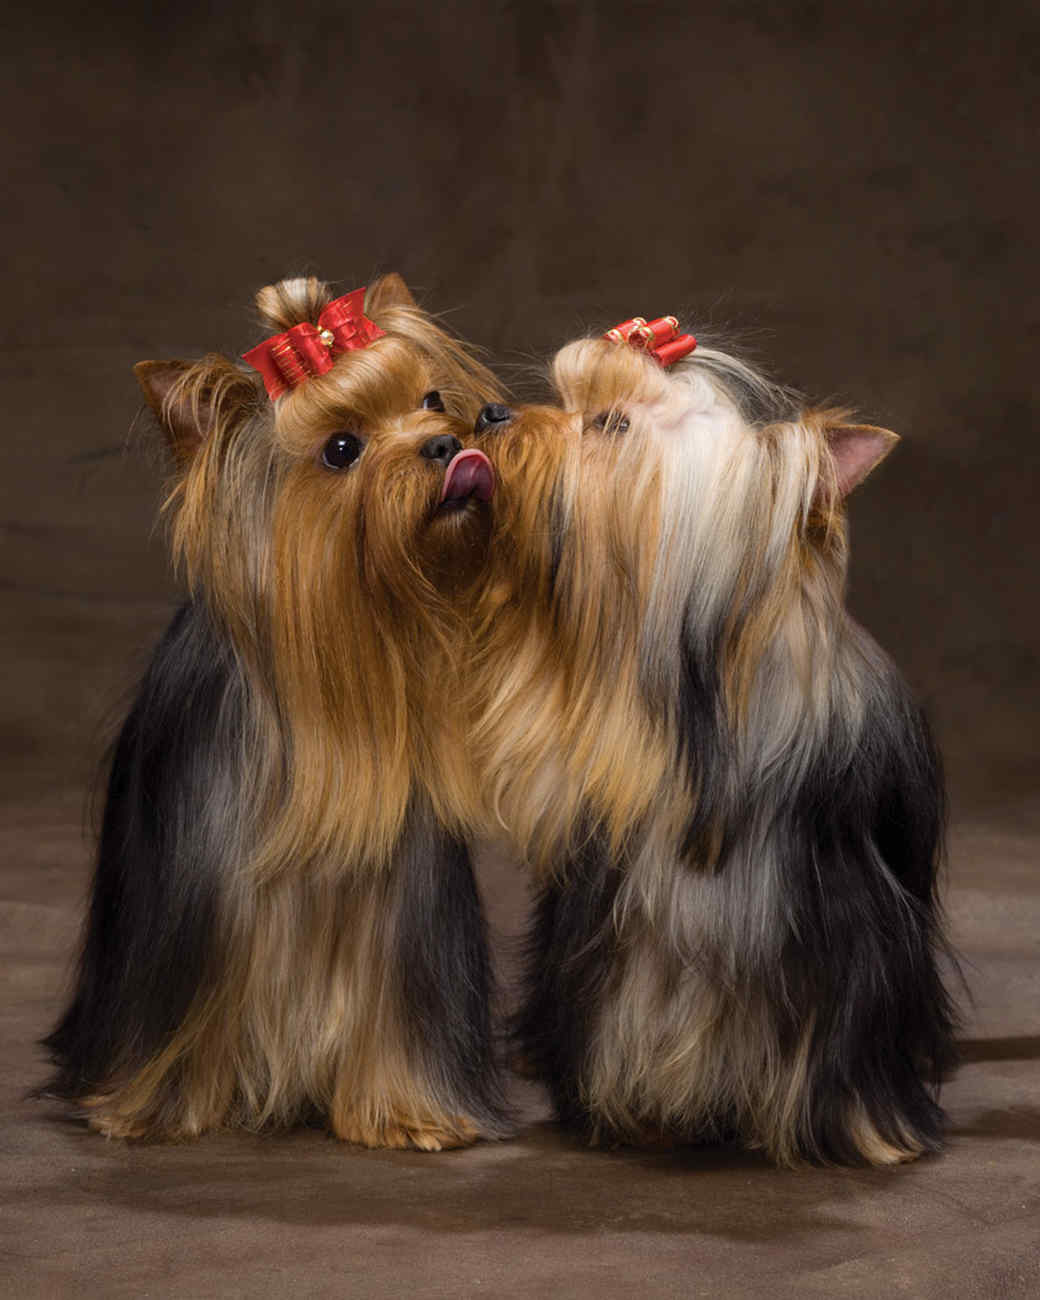 md105724_1110_yorkshireterrier.jpg